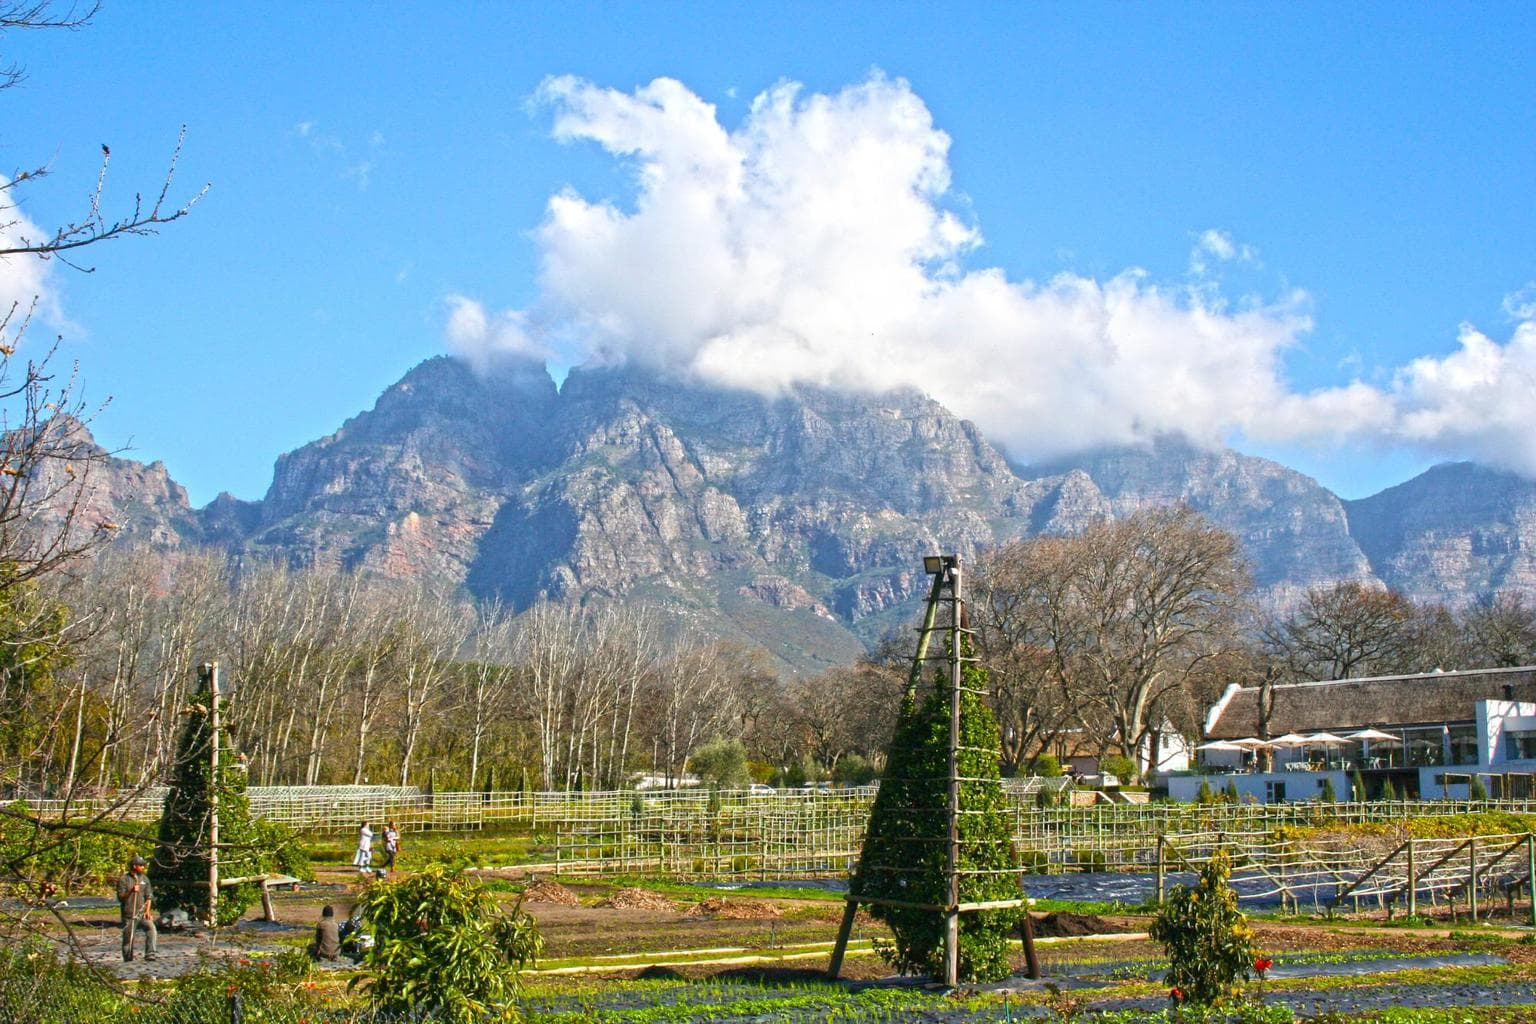 The grounds at Boschendal